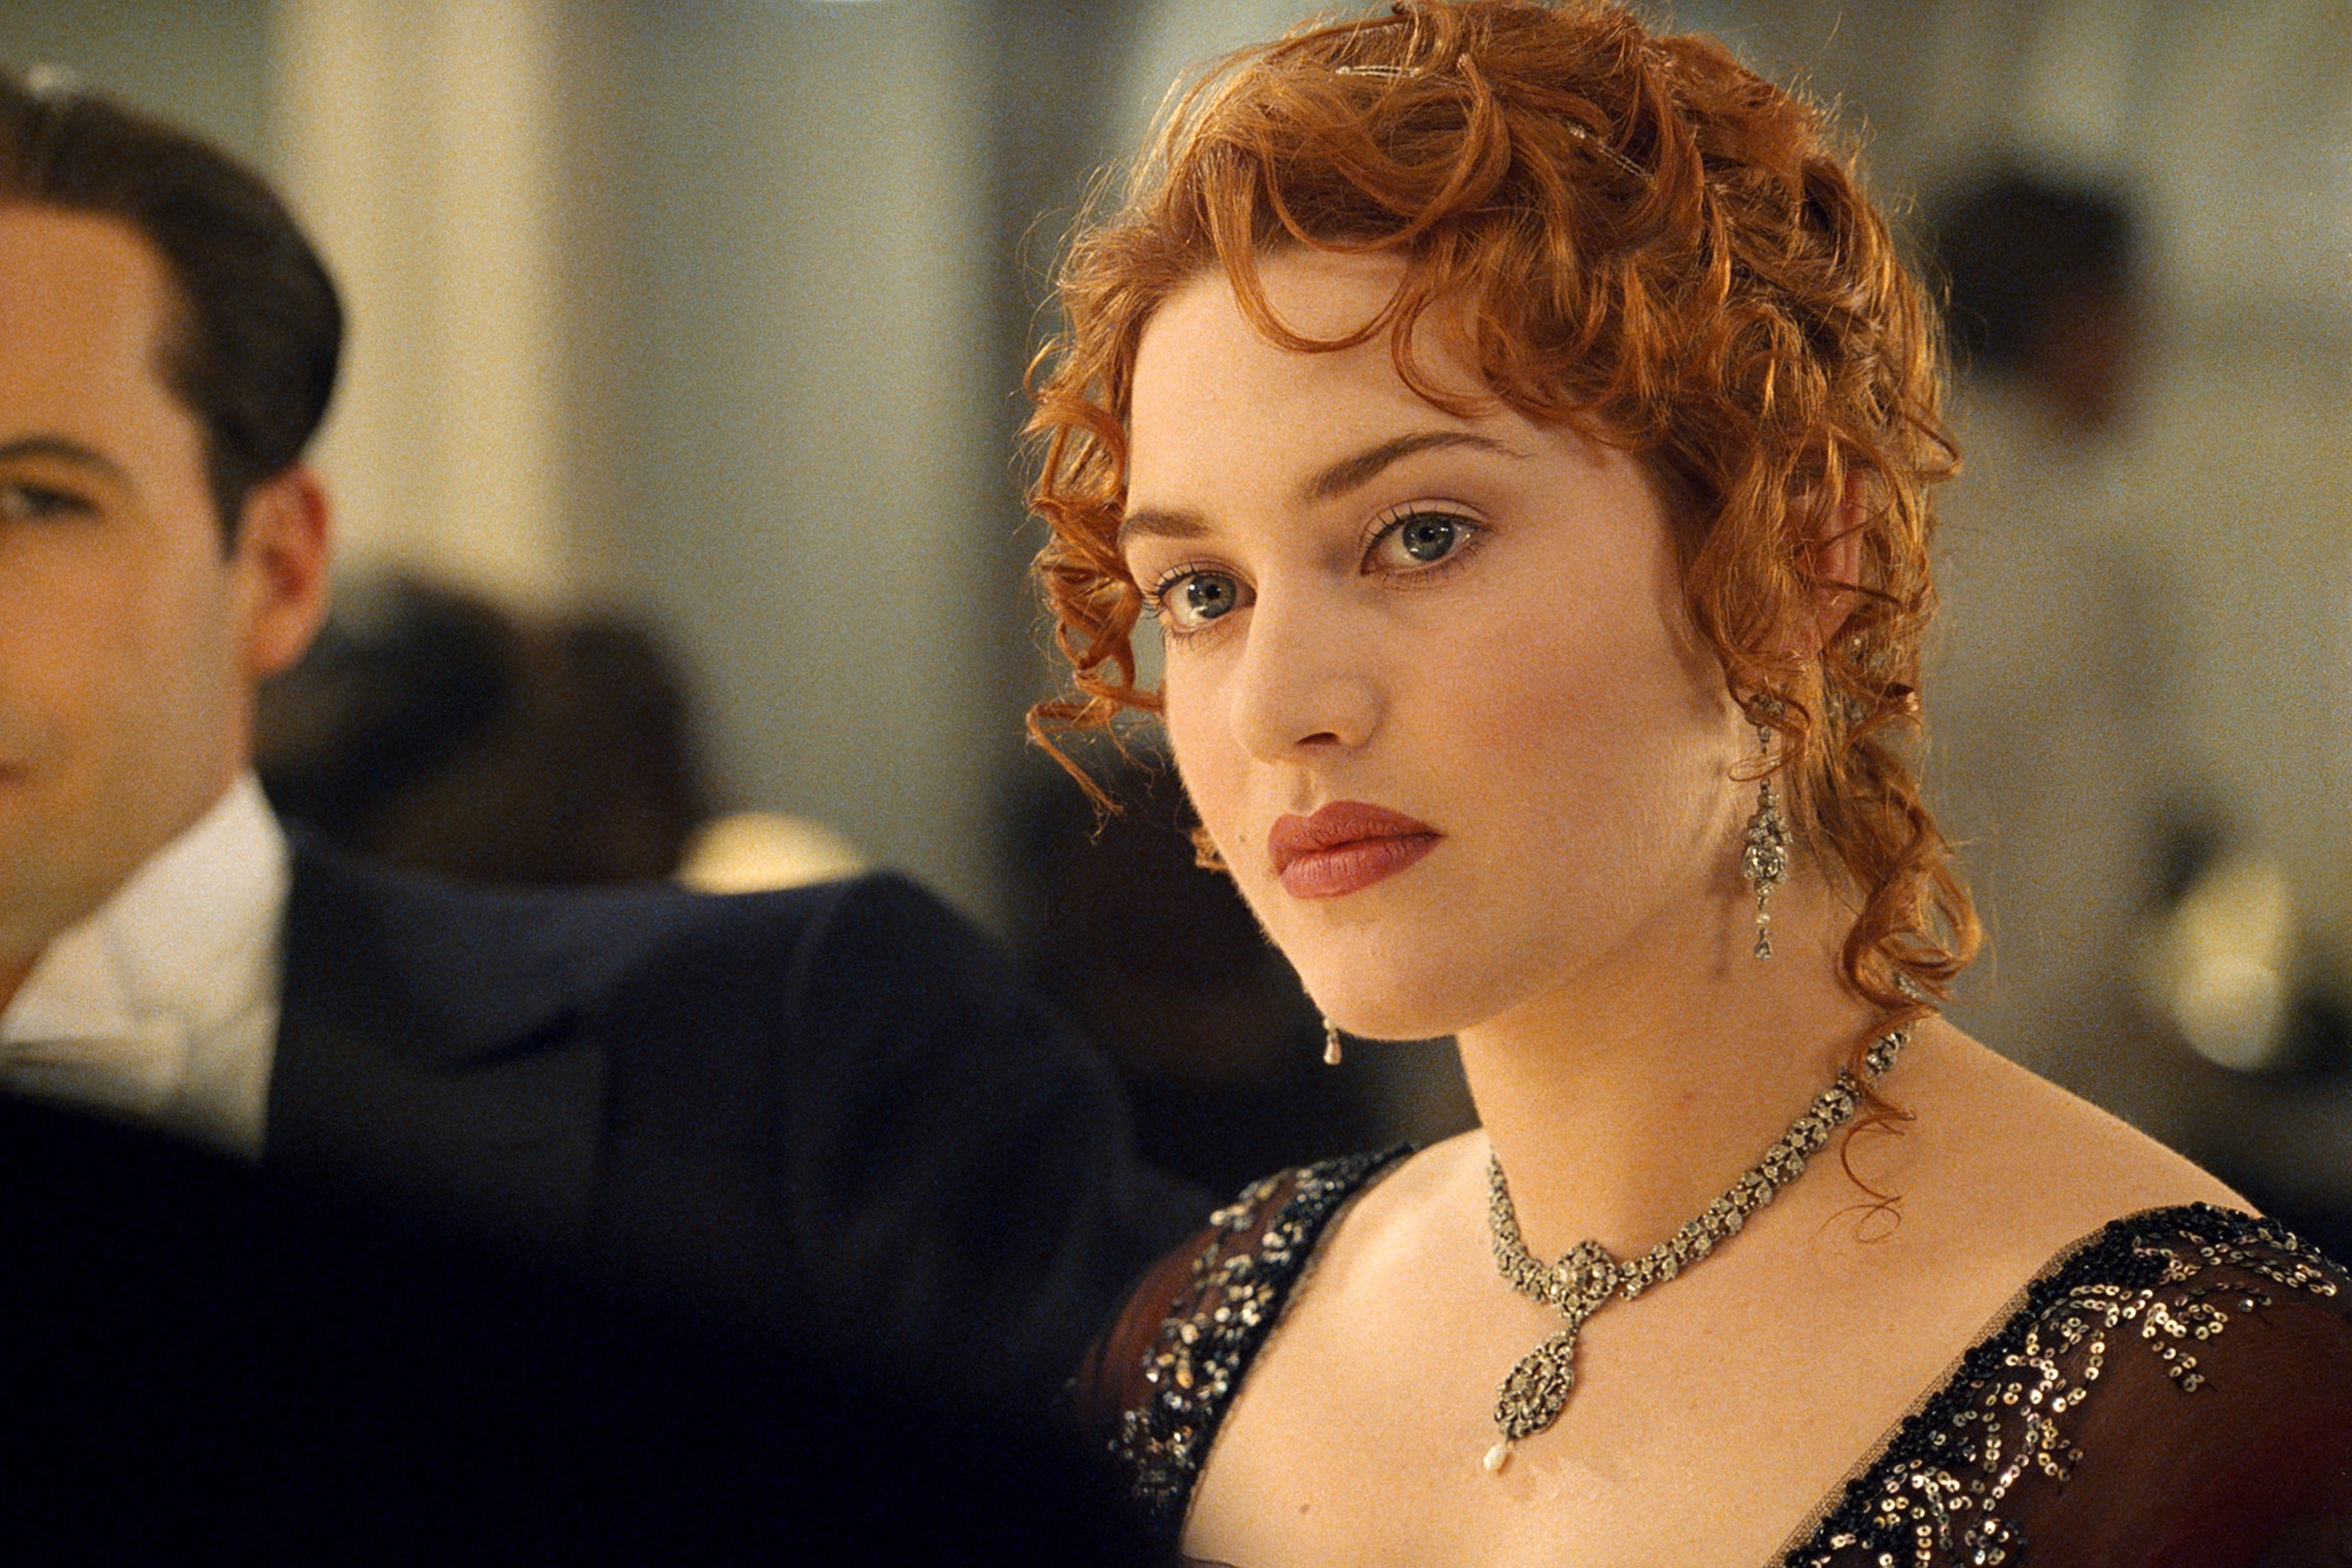 titanic 20th anniversary: kate winslet looks back on james cameron